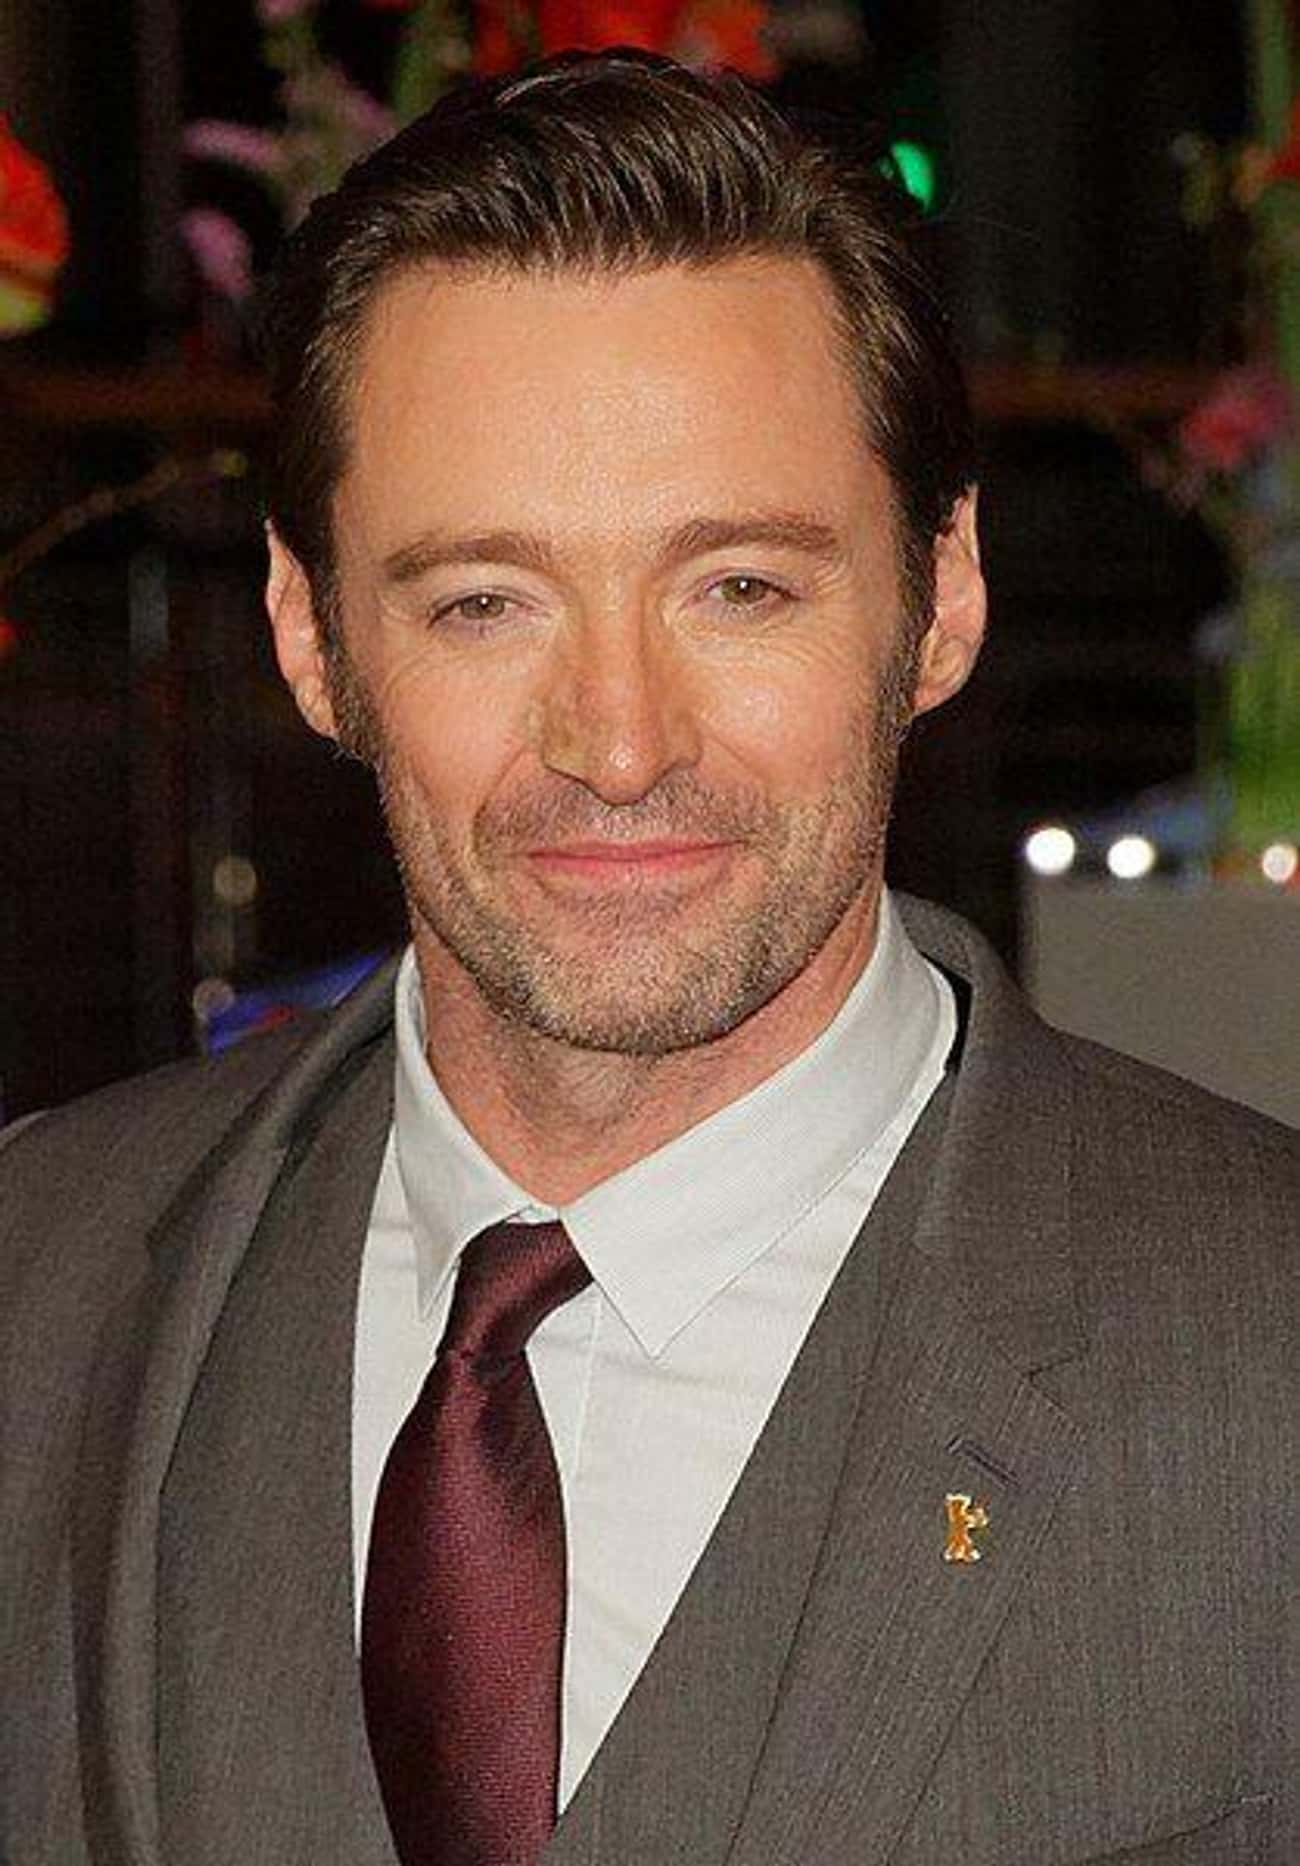 Hugh Jackman Was a Party Clown is listed (or ranked) 3 on the list Celebrities Who Had Weird Jobs Before They Were Famous